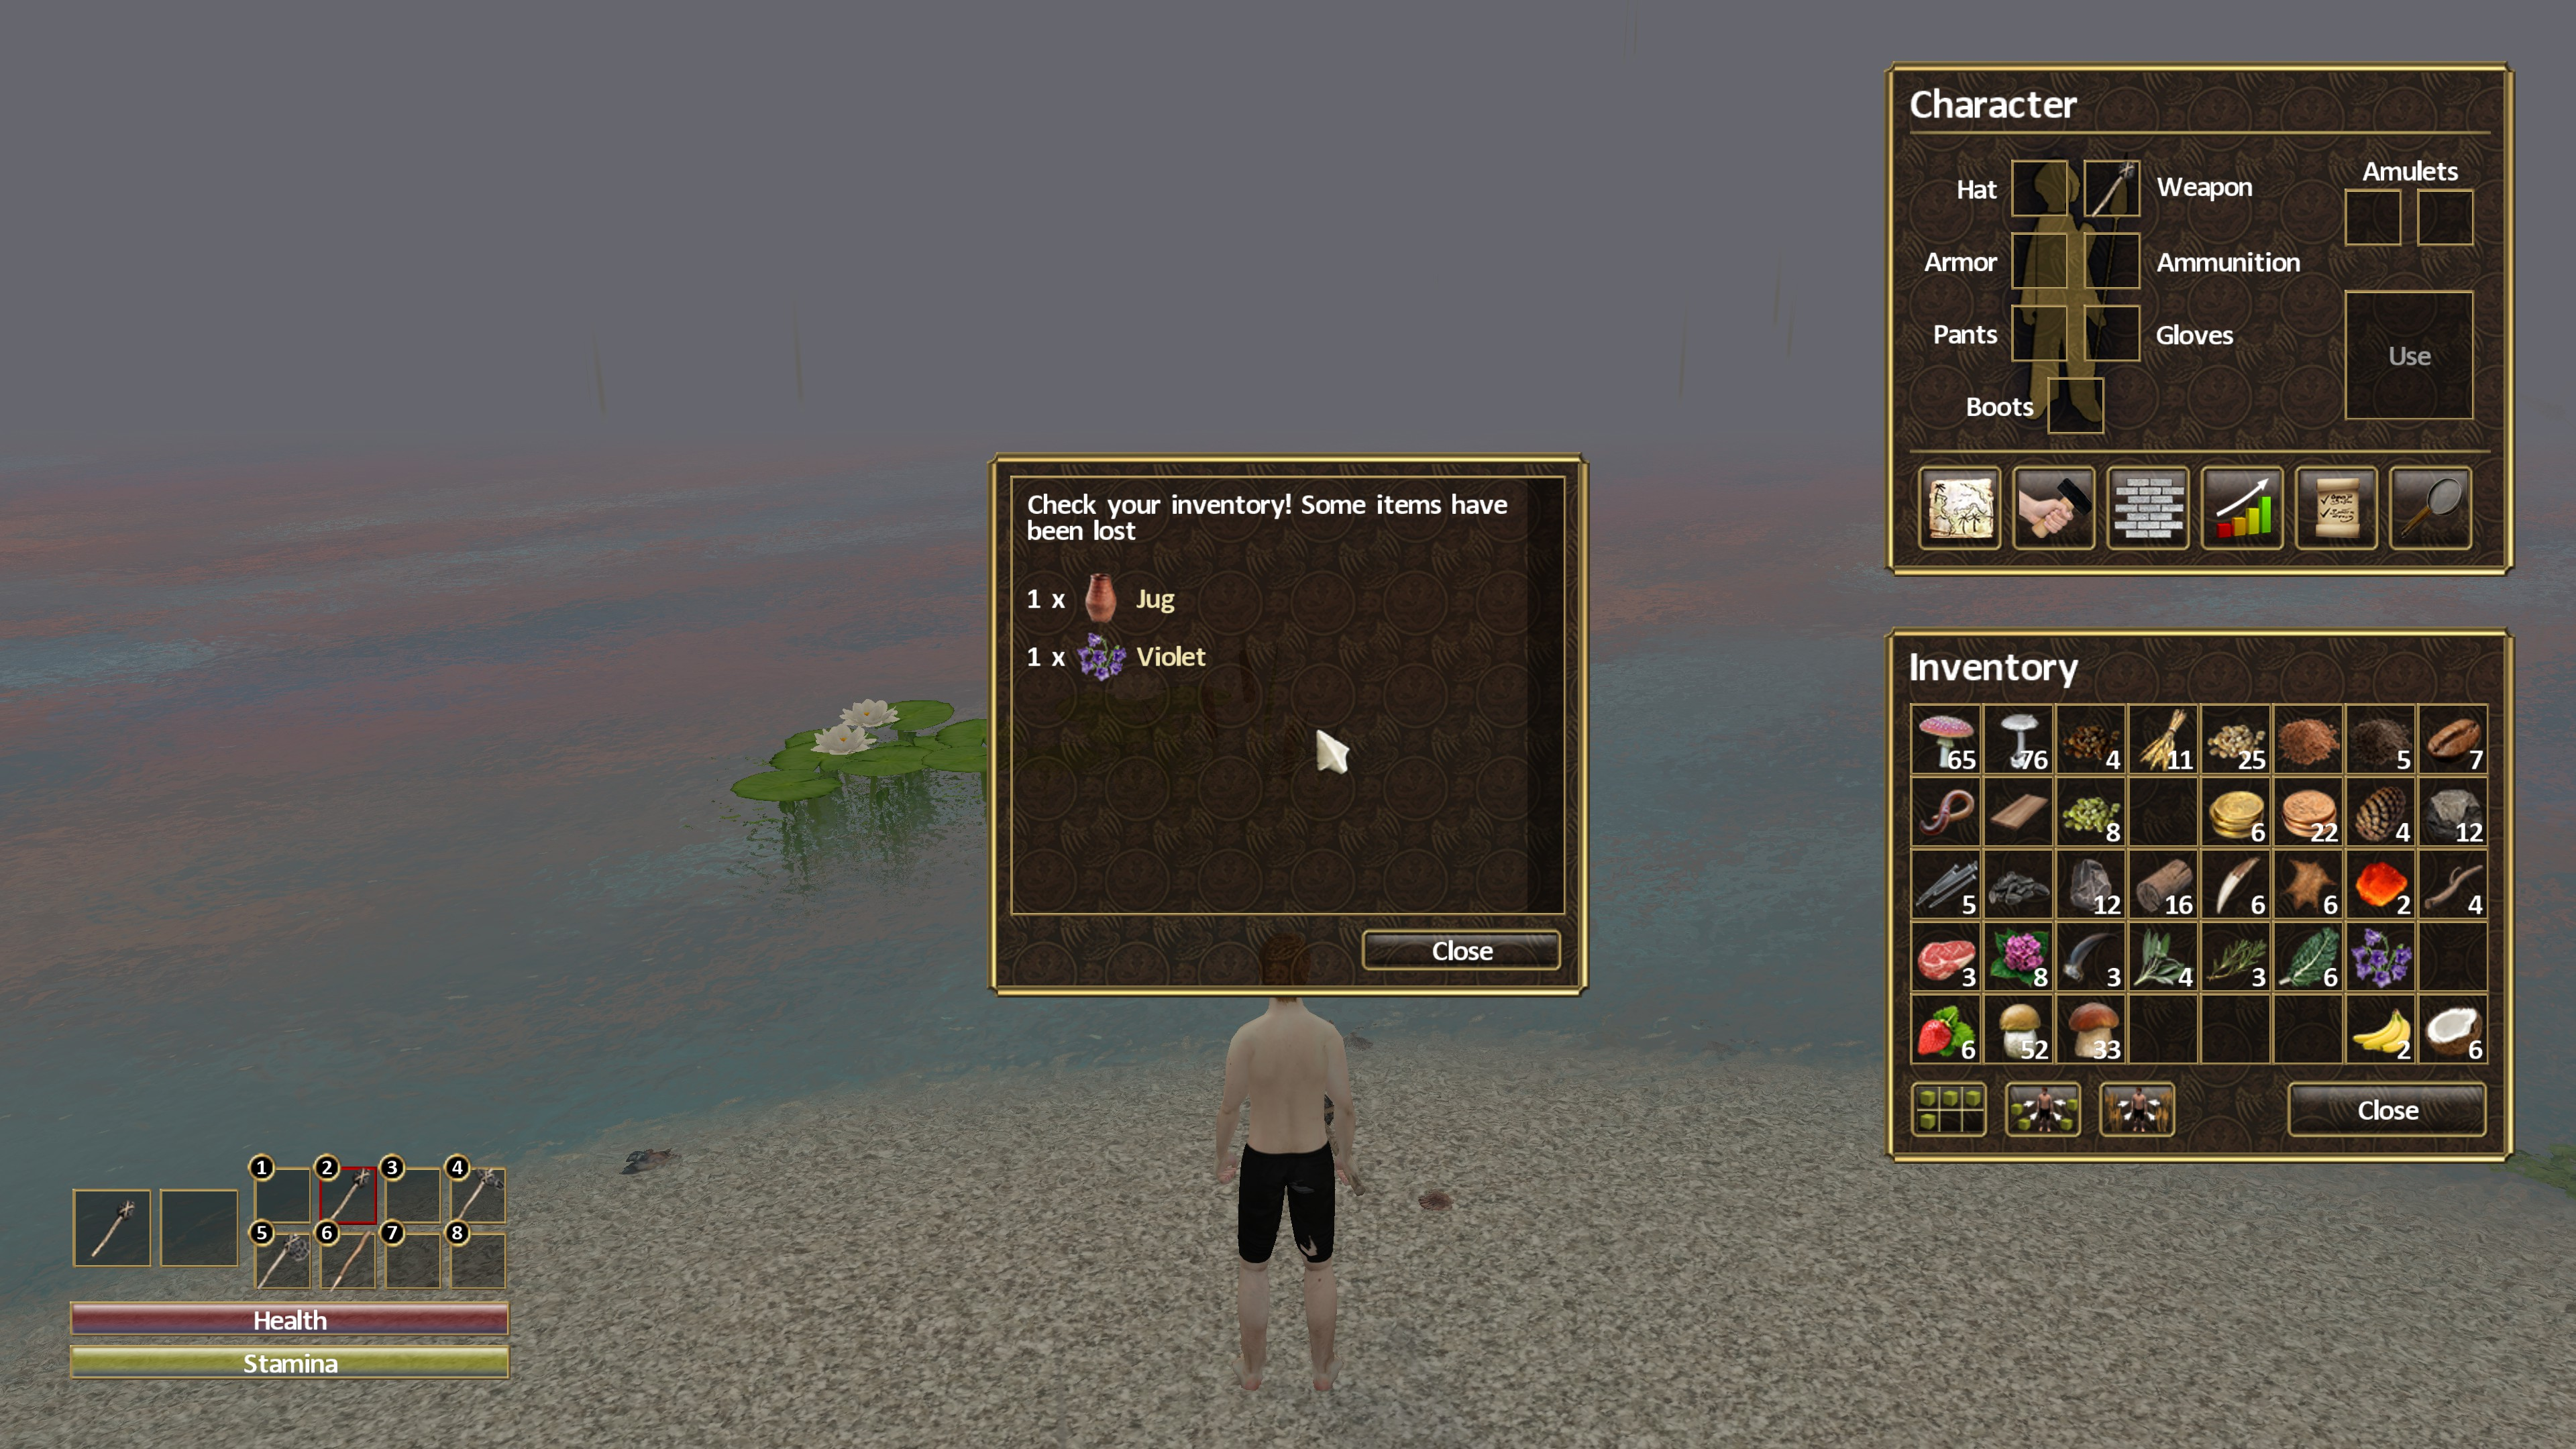 In-game window text: check your inventory! some items have been lost. 1 jug, 1 violet